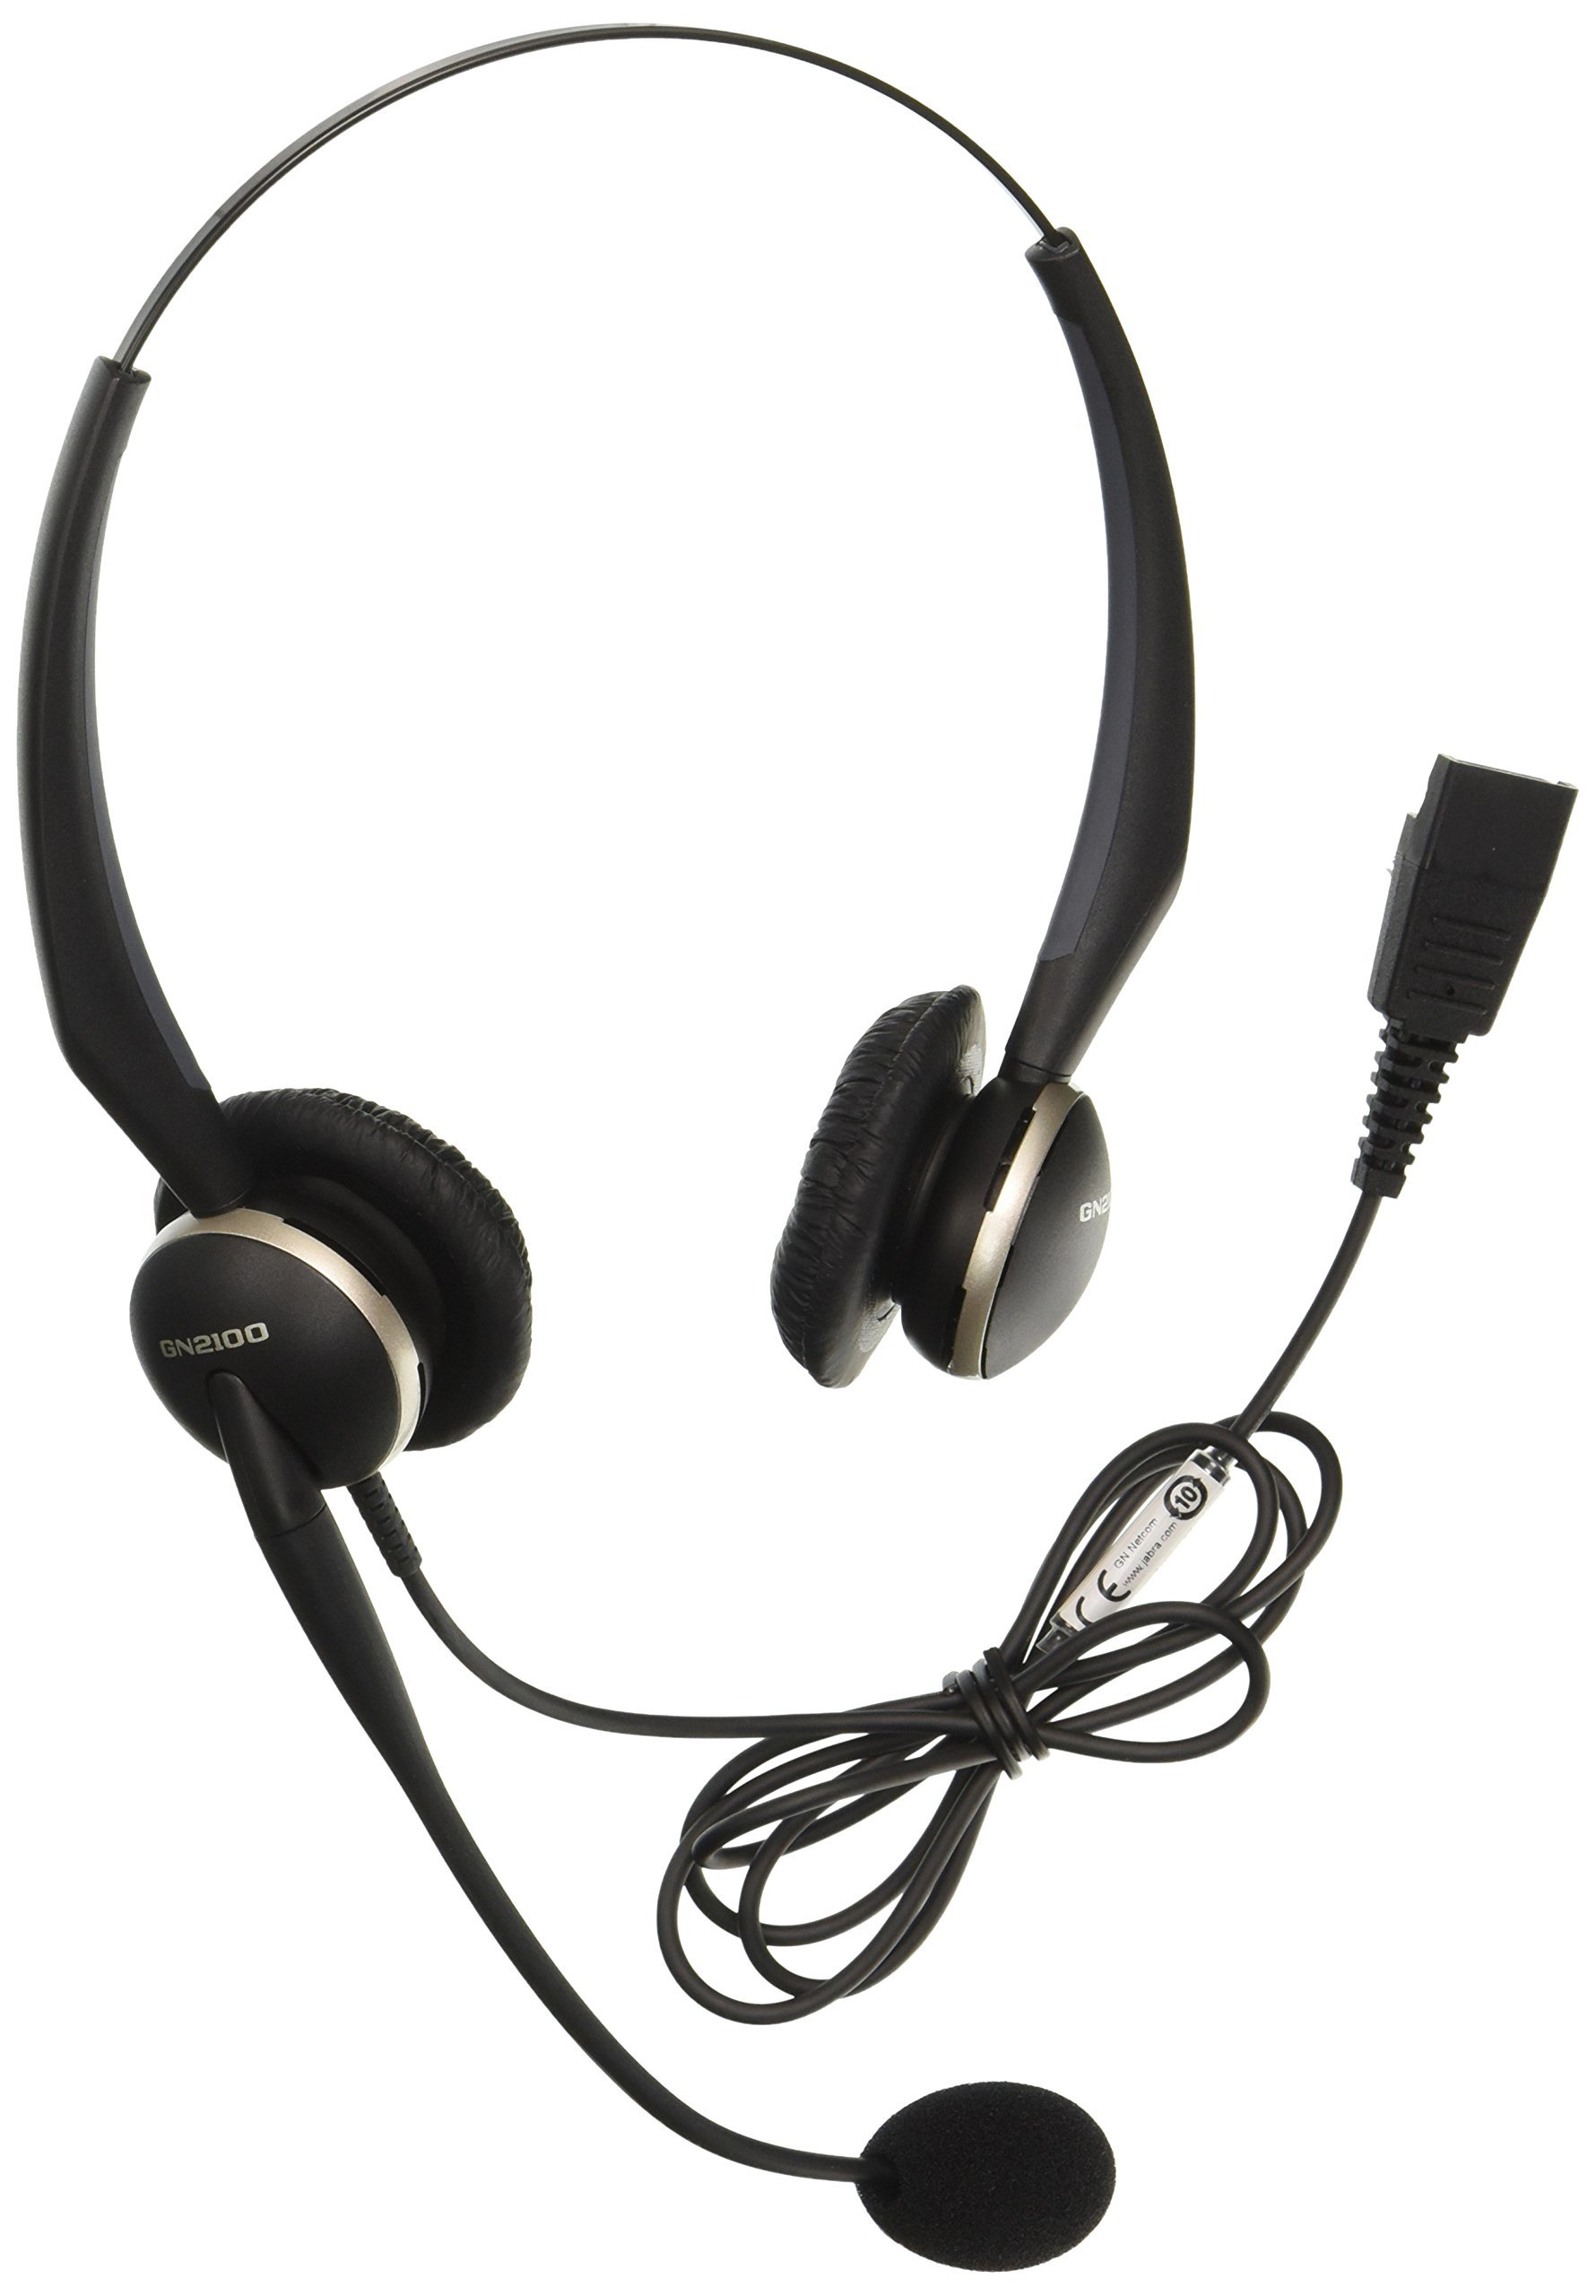 Jabra 2127-80-54 GN2125 NCTC Telecoil Headset for Deskphone